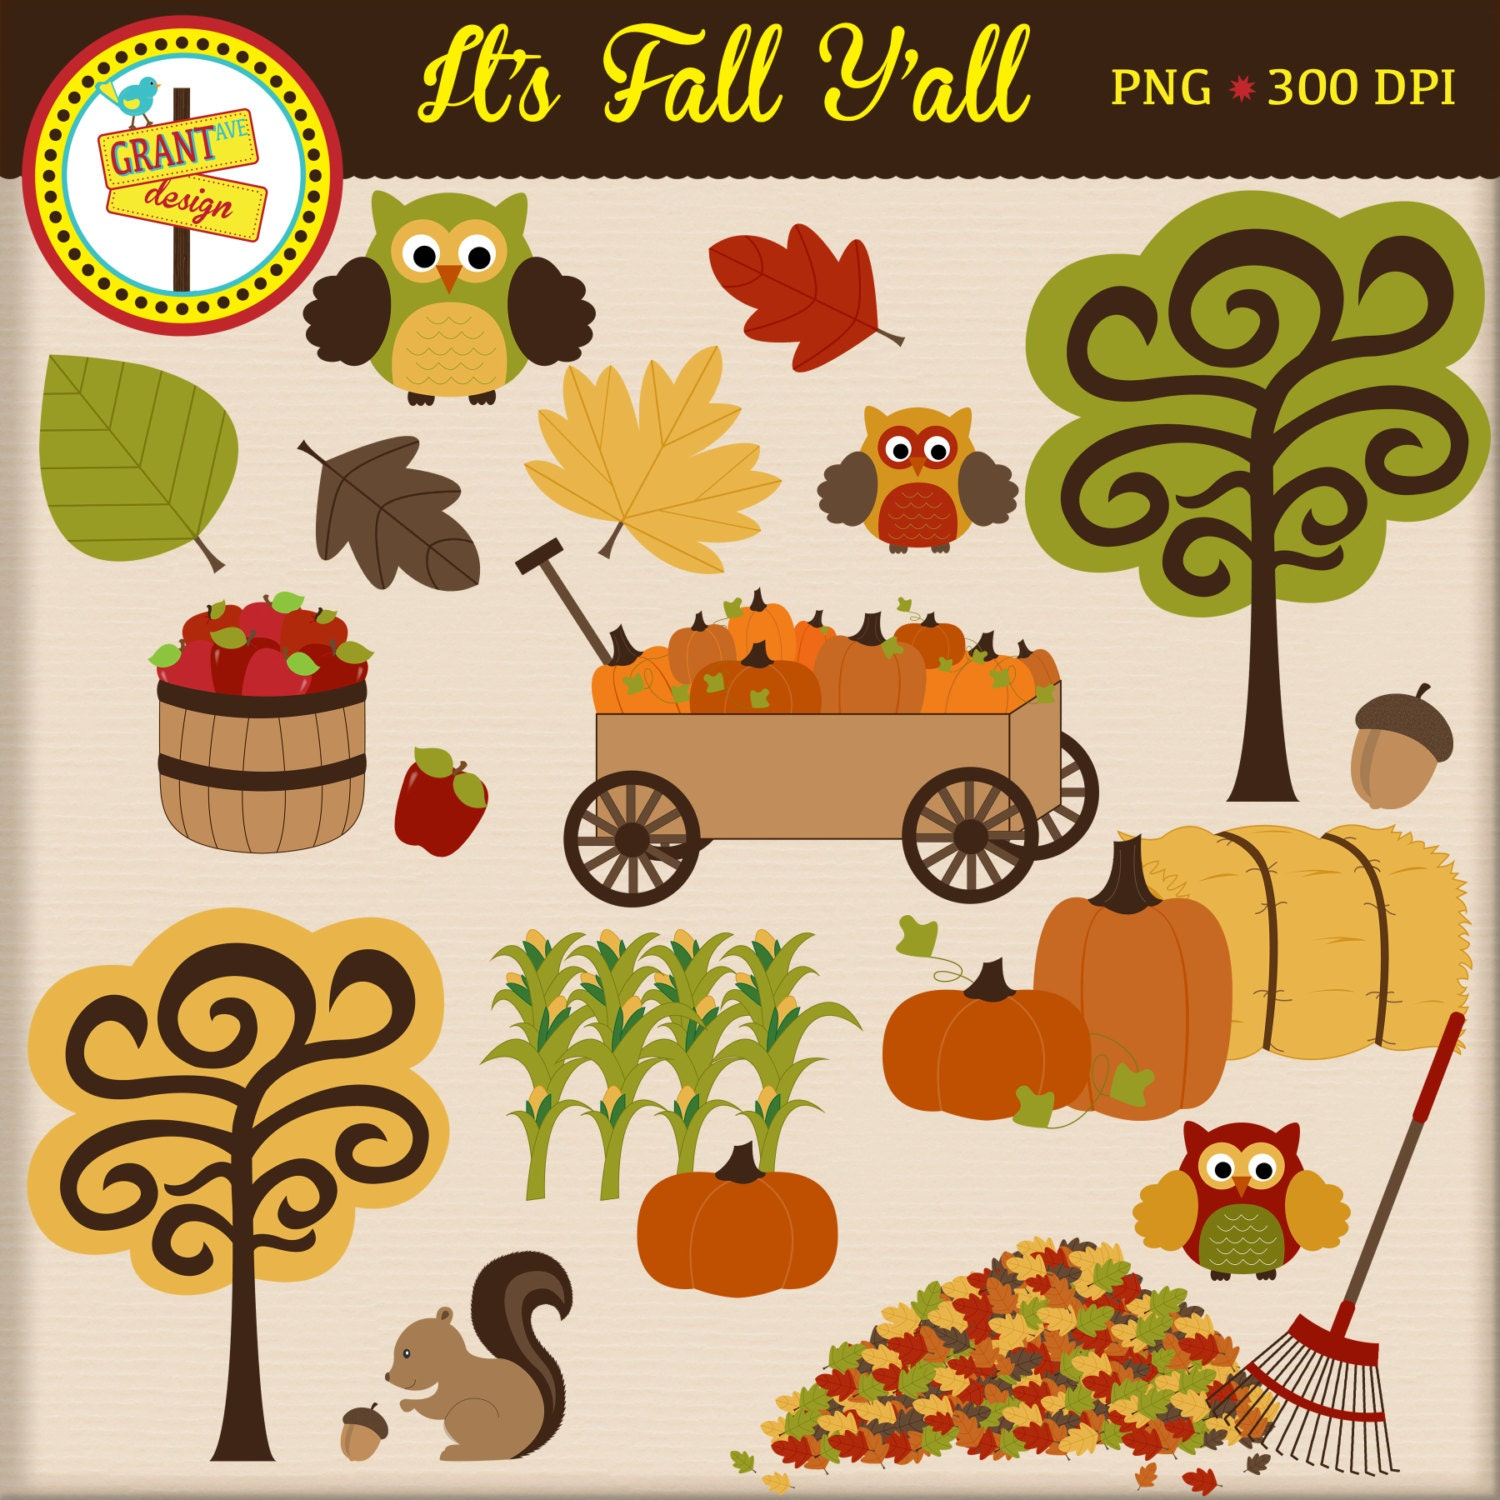 Fall Clip Art Fall Clipart Cute Digital by GrantAvenueDesign